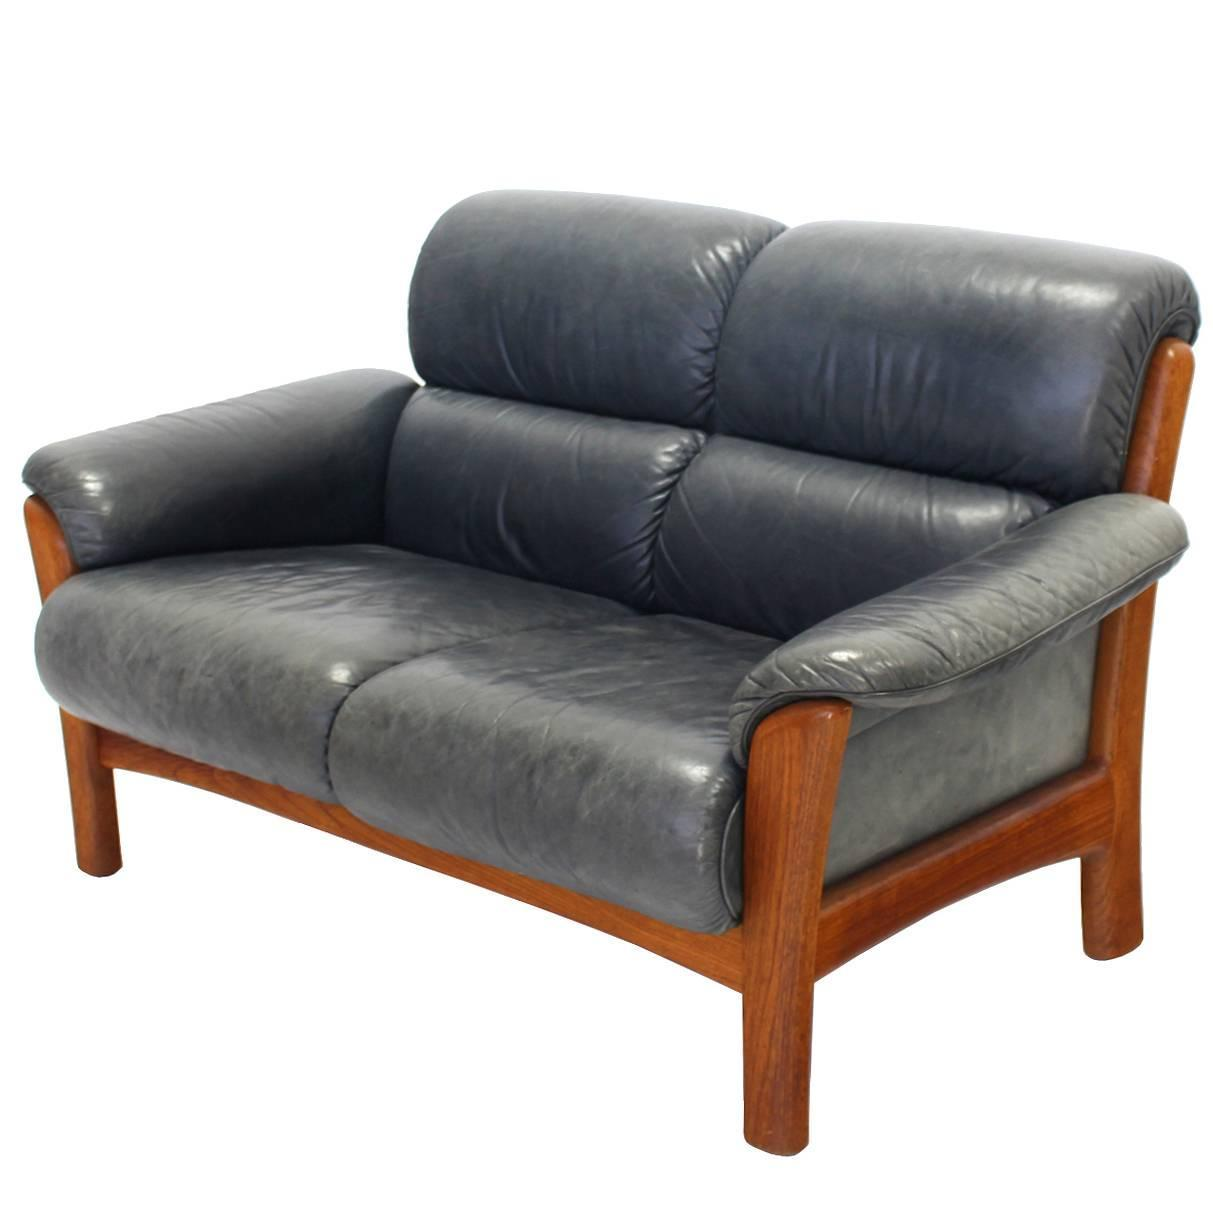 Leather And Solid Teak Mid Century Modern Danish Loveseat For Sale At 1stdibs